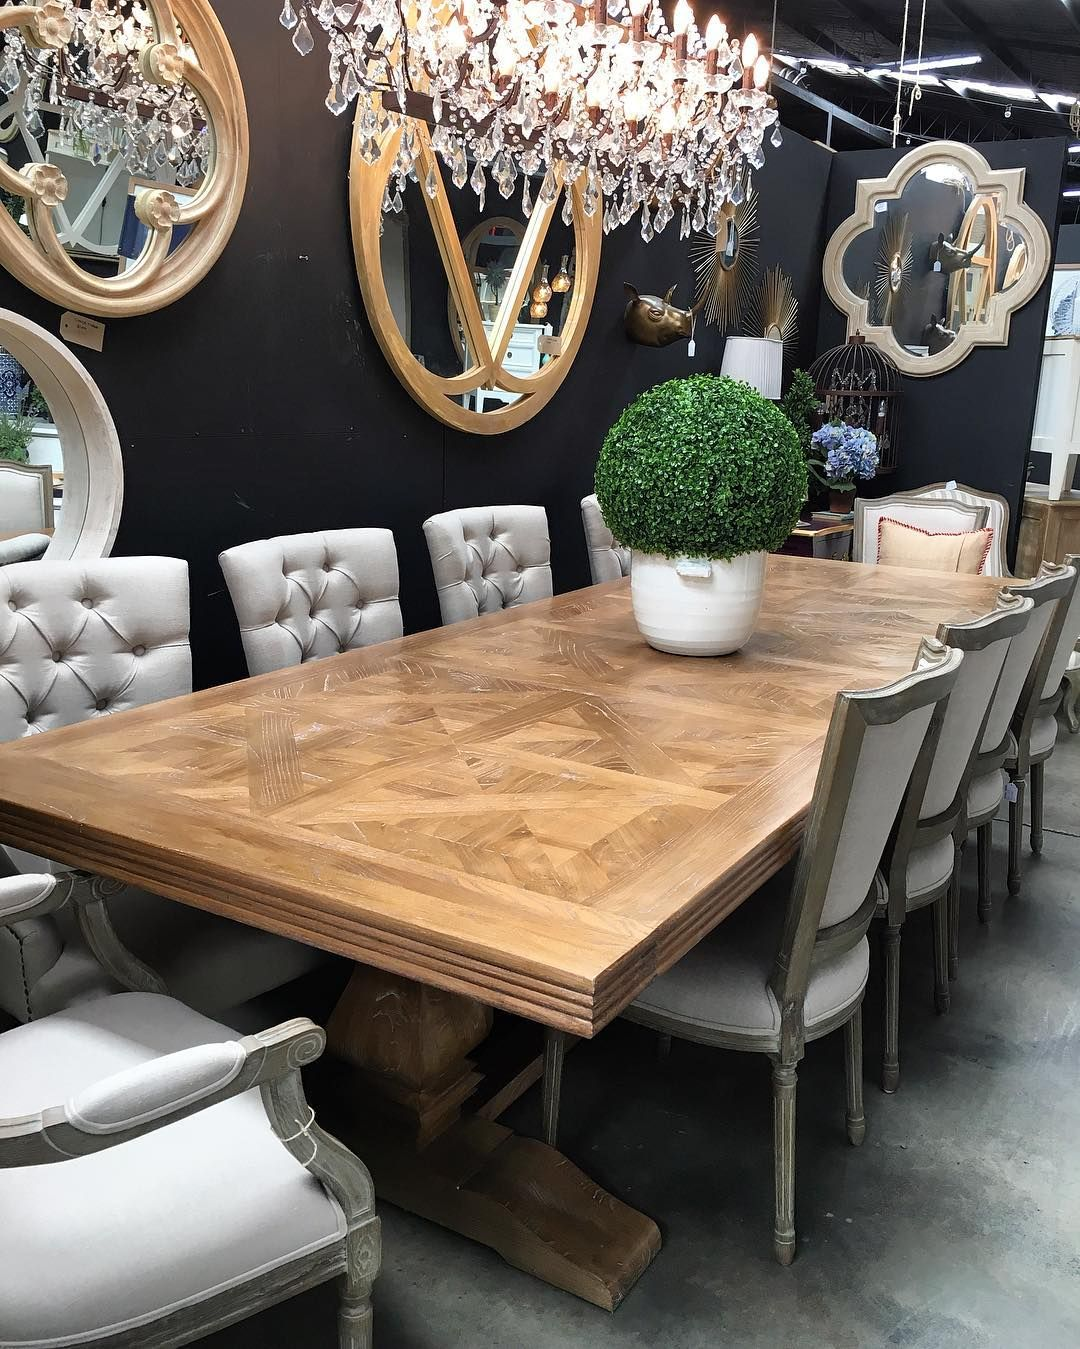 Banquet Dining Table: Now THIS Is A TABLE! Canalside Interiors' 3.2m Banquet